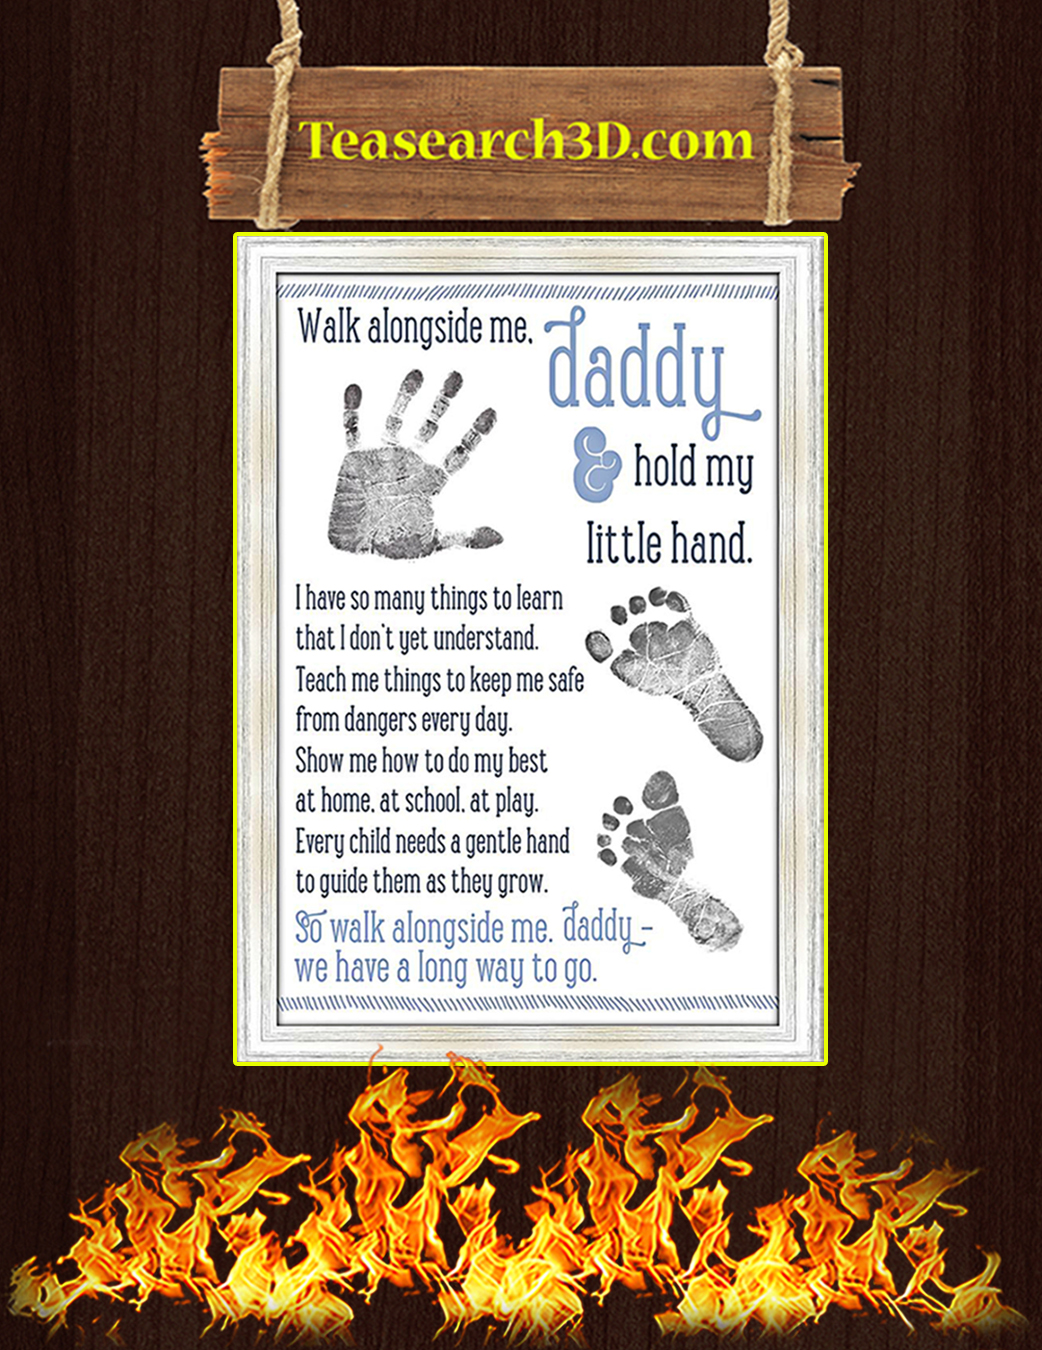 Walk alongside me daddy hold my little hand poster A1